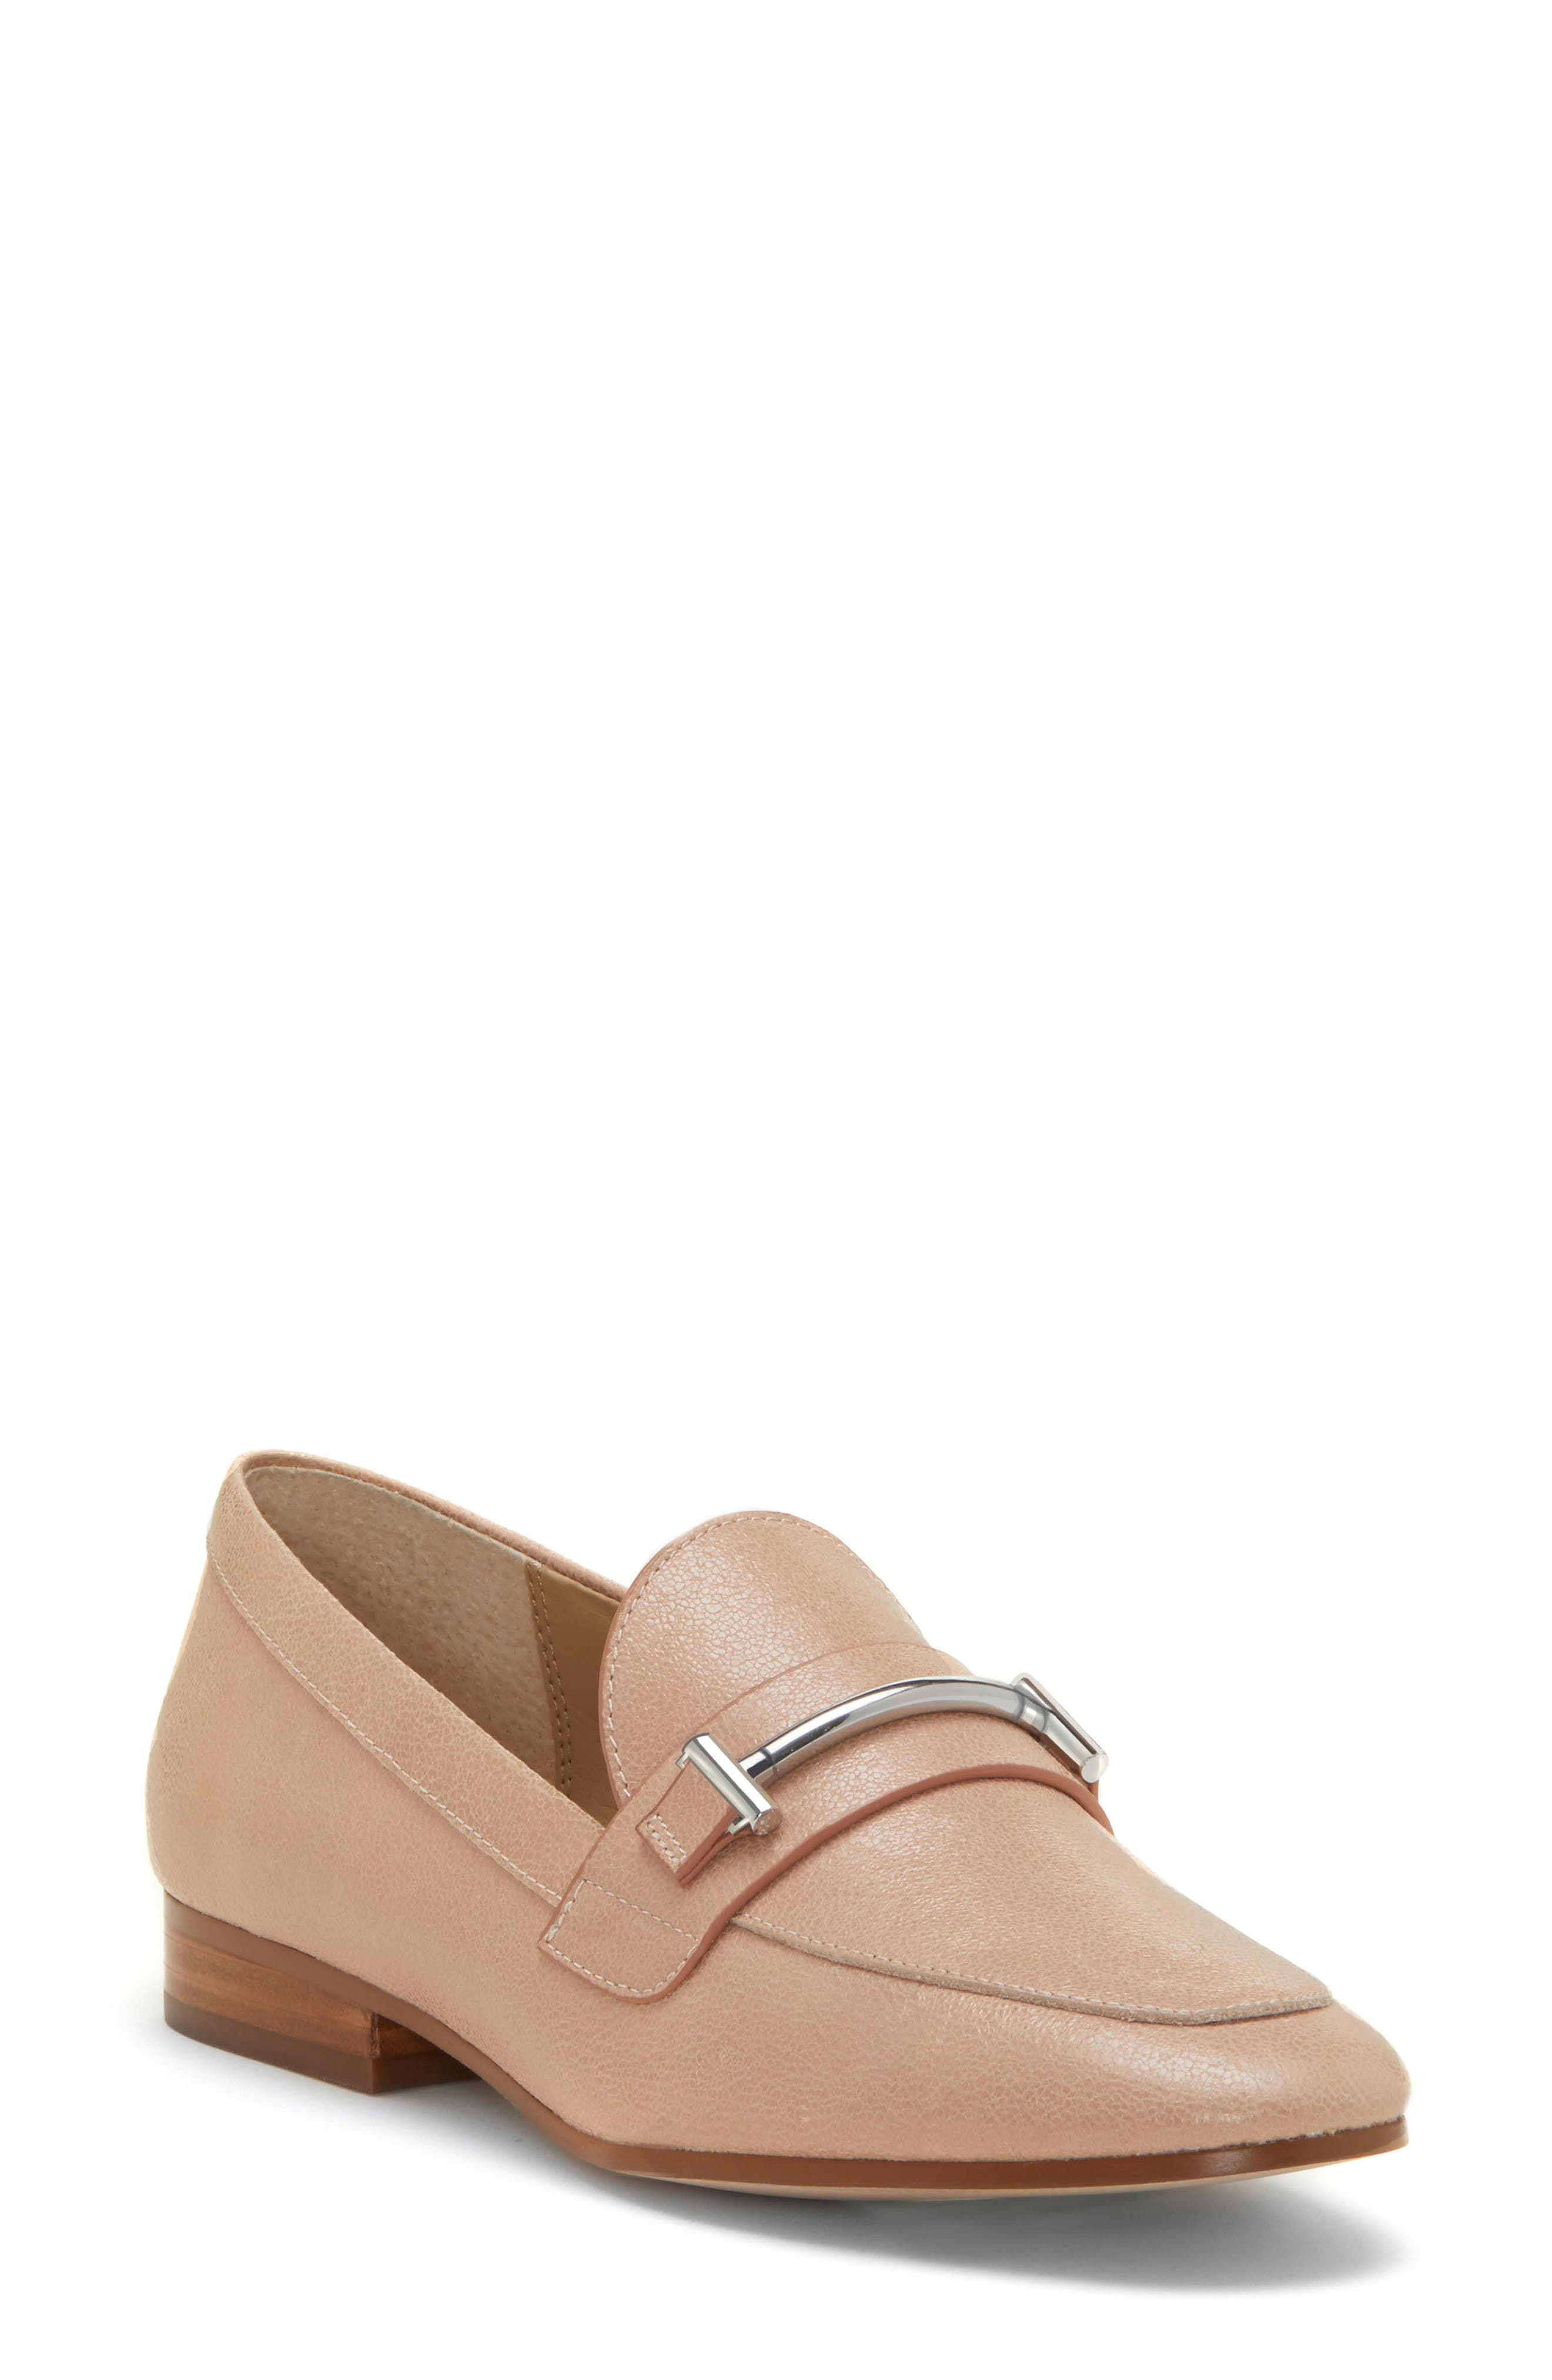 Tatye Loafer,                             Main thumbnail 1, color,                             LIGHT LATTE LEATHER